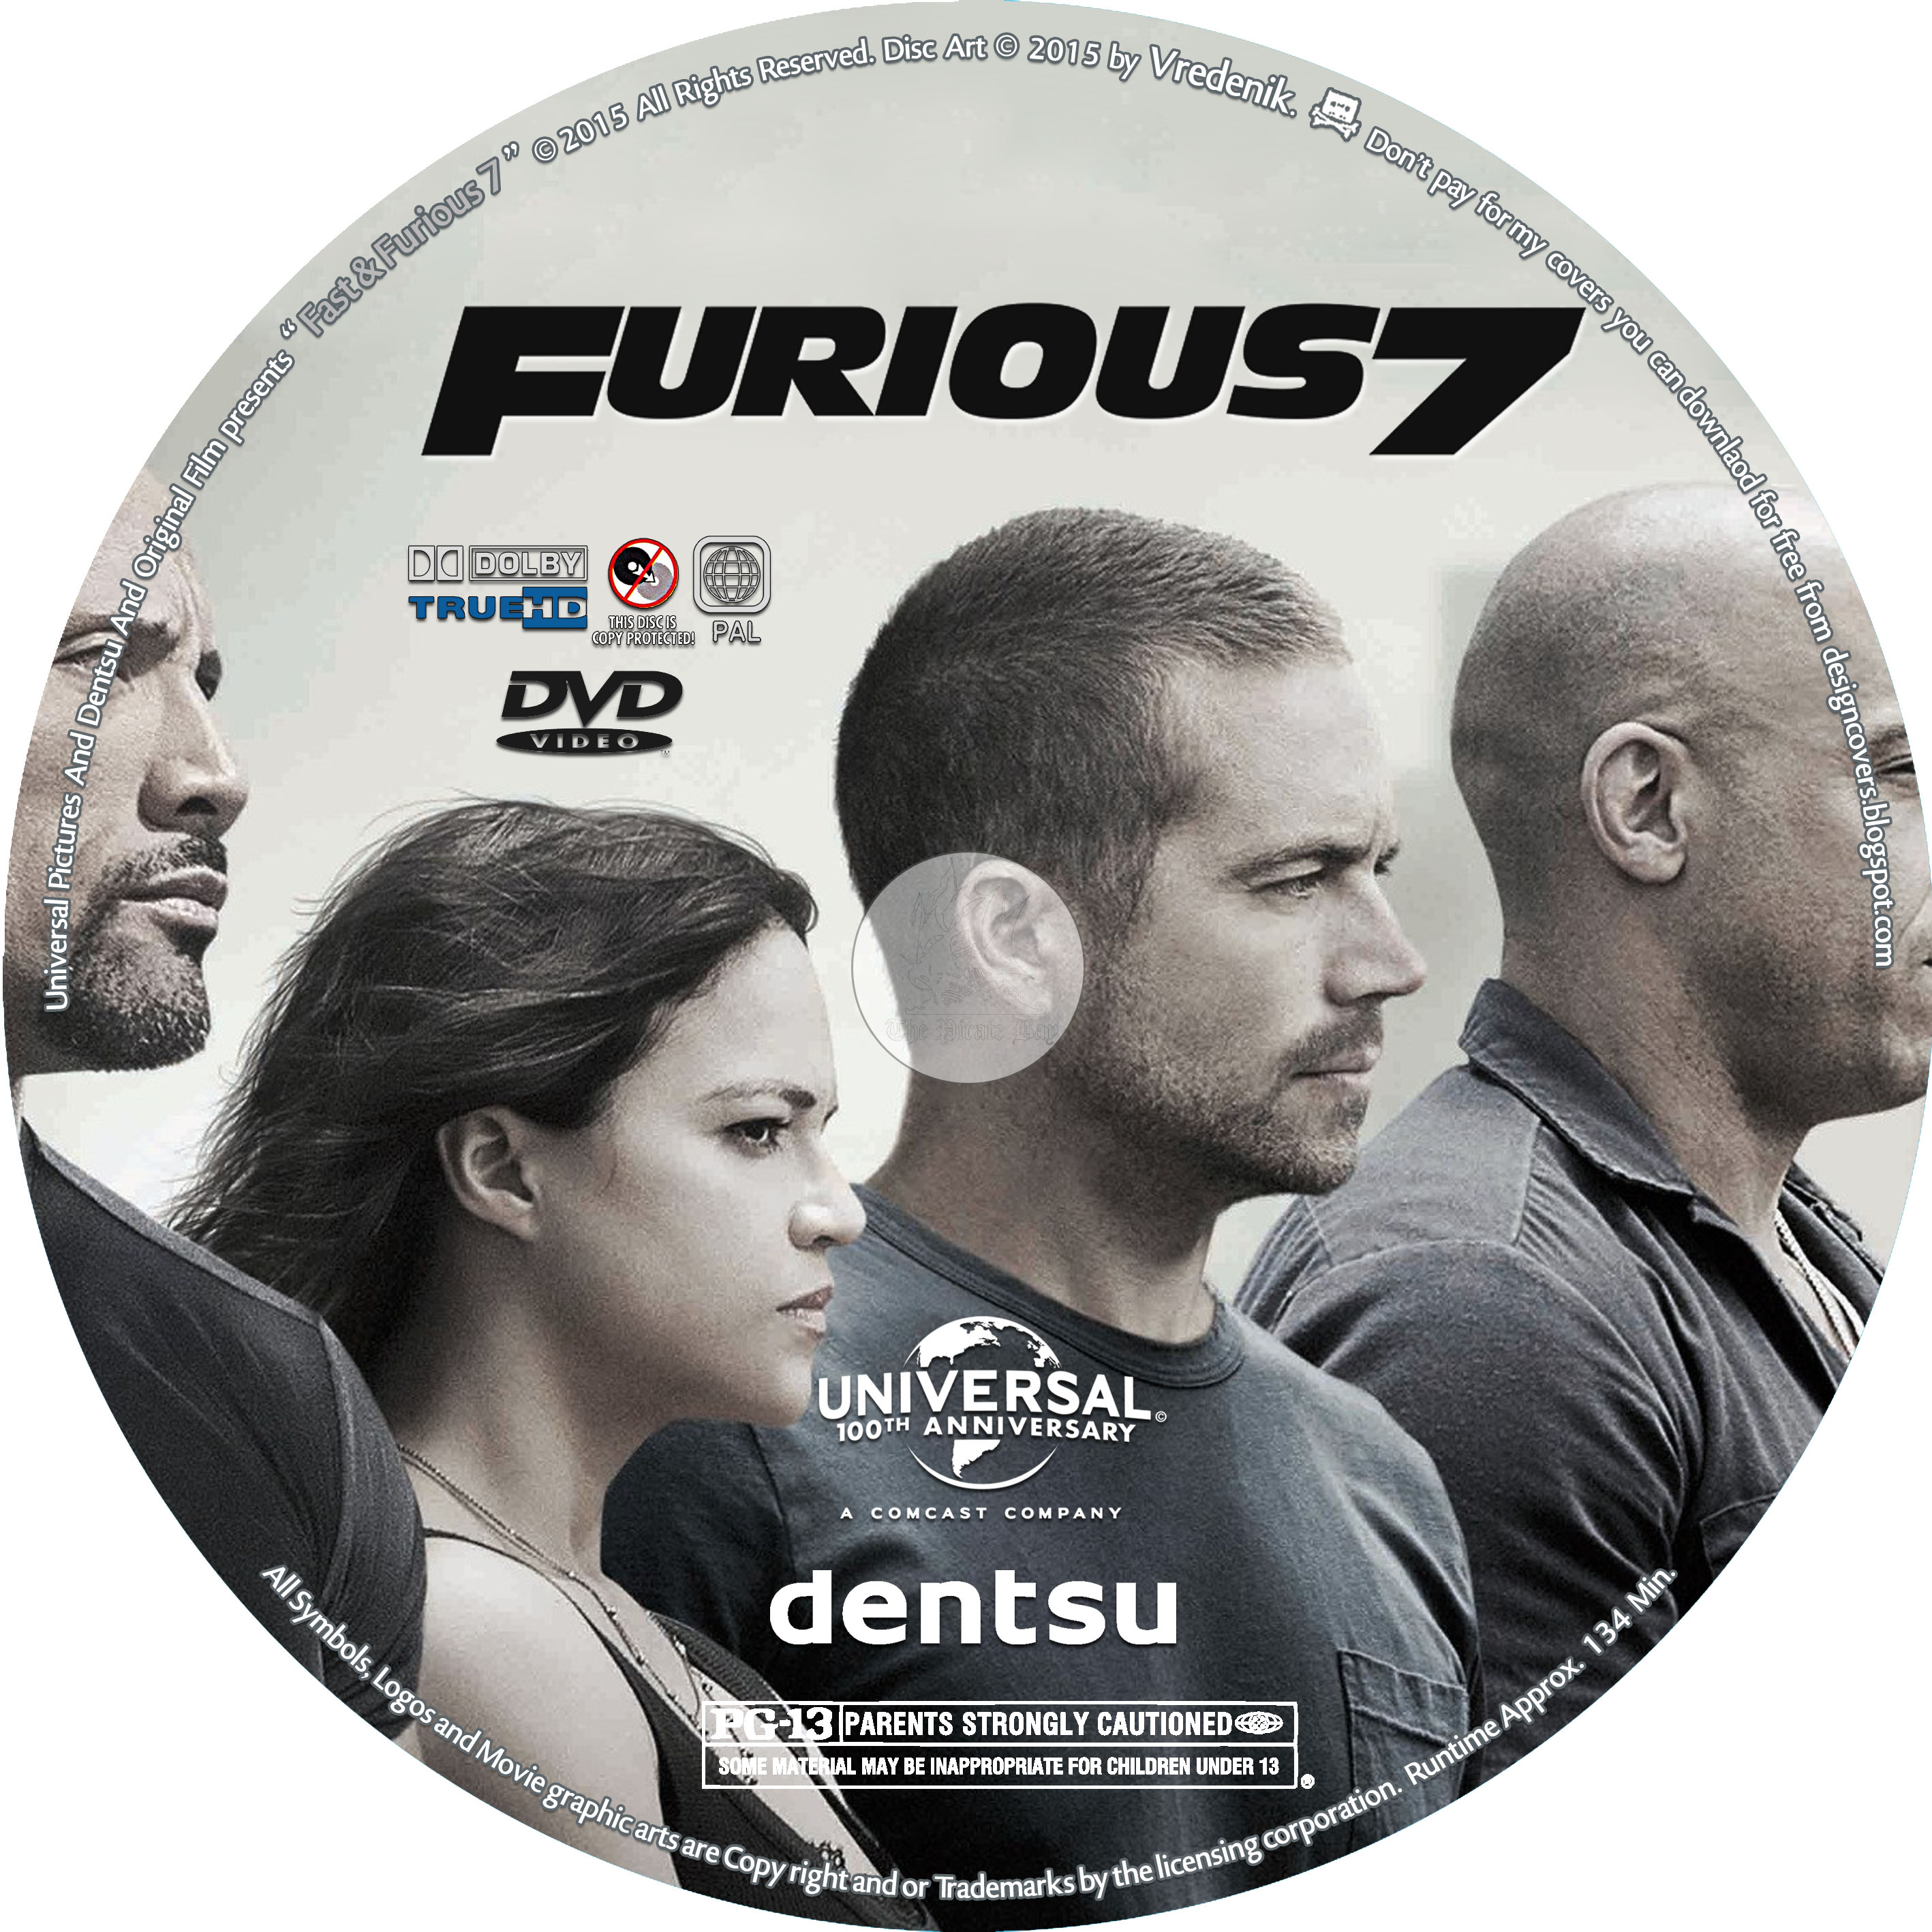 covers box sk fast furious 7 2015 dvd high quality dvd blueray movie. Black Bedroom Furniture Sets. Home Design Ideas